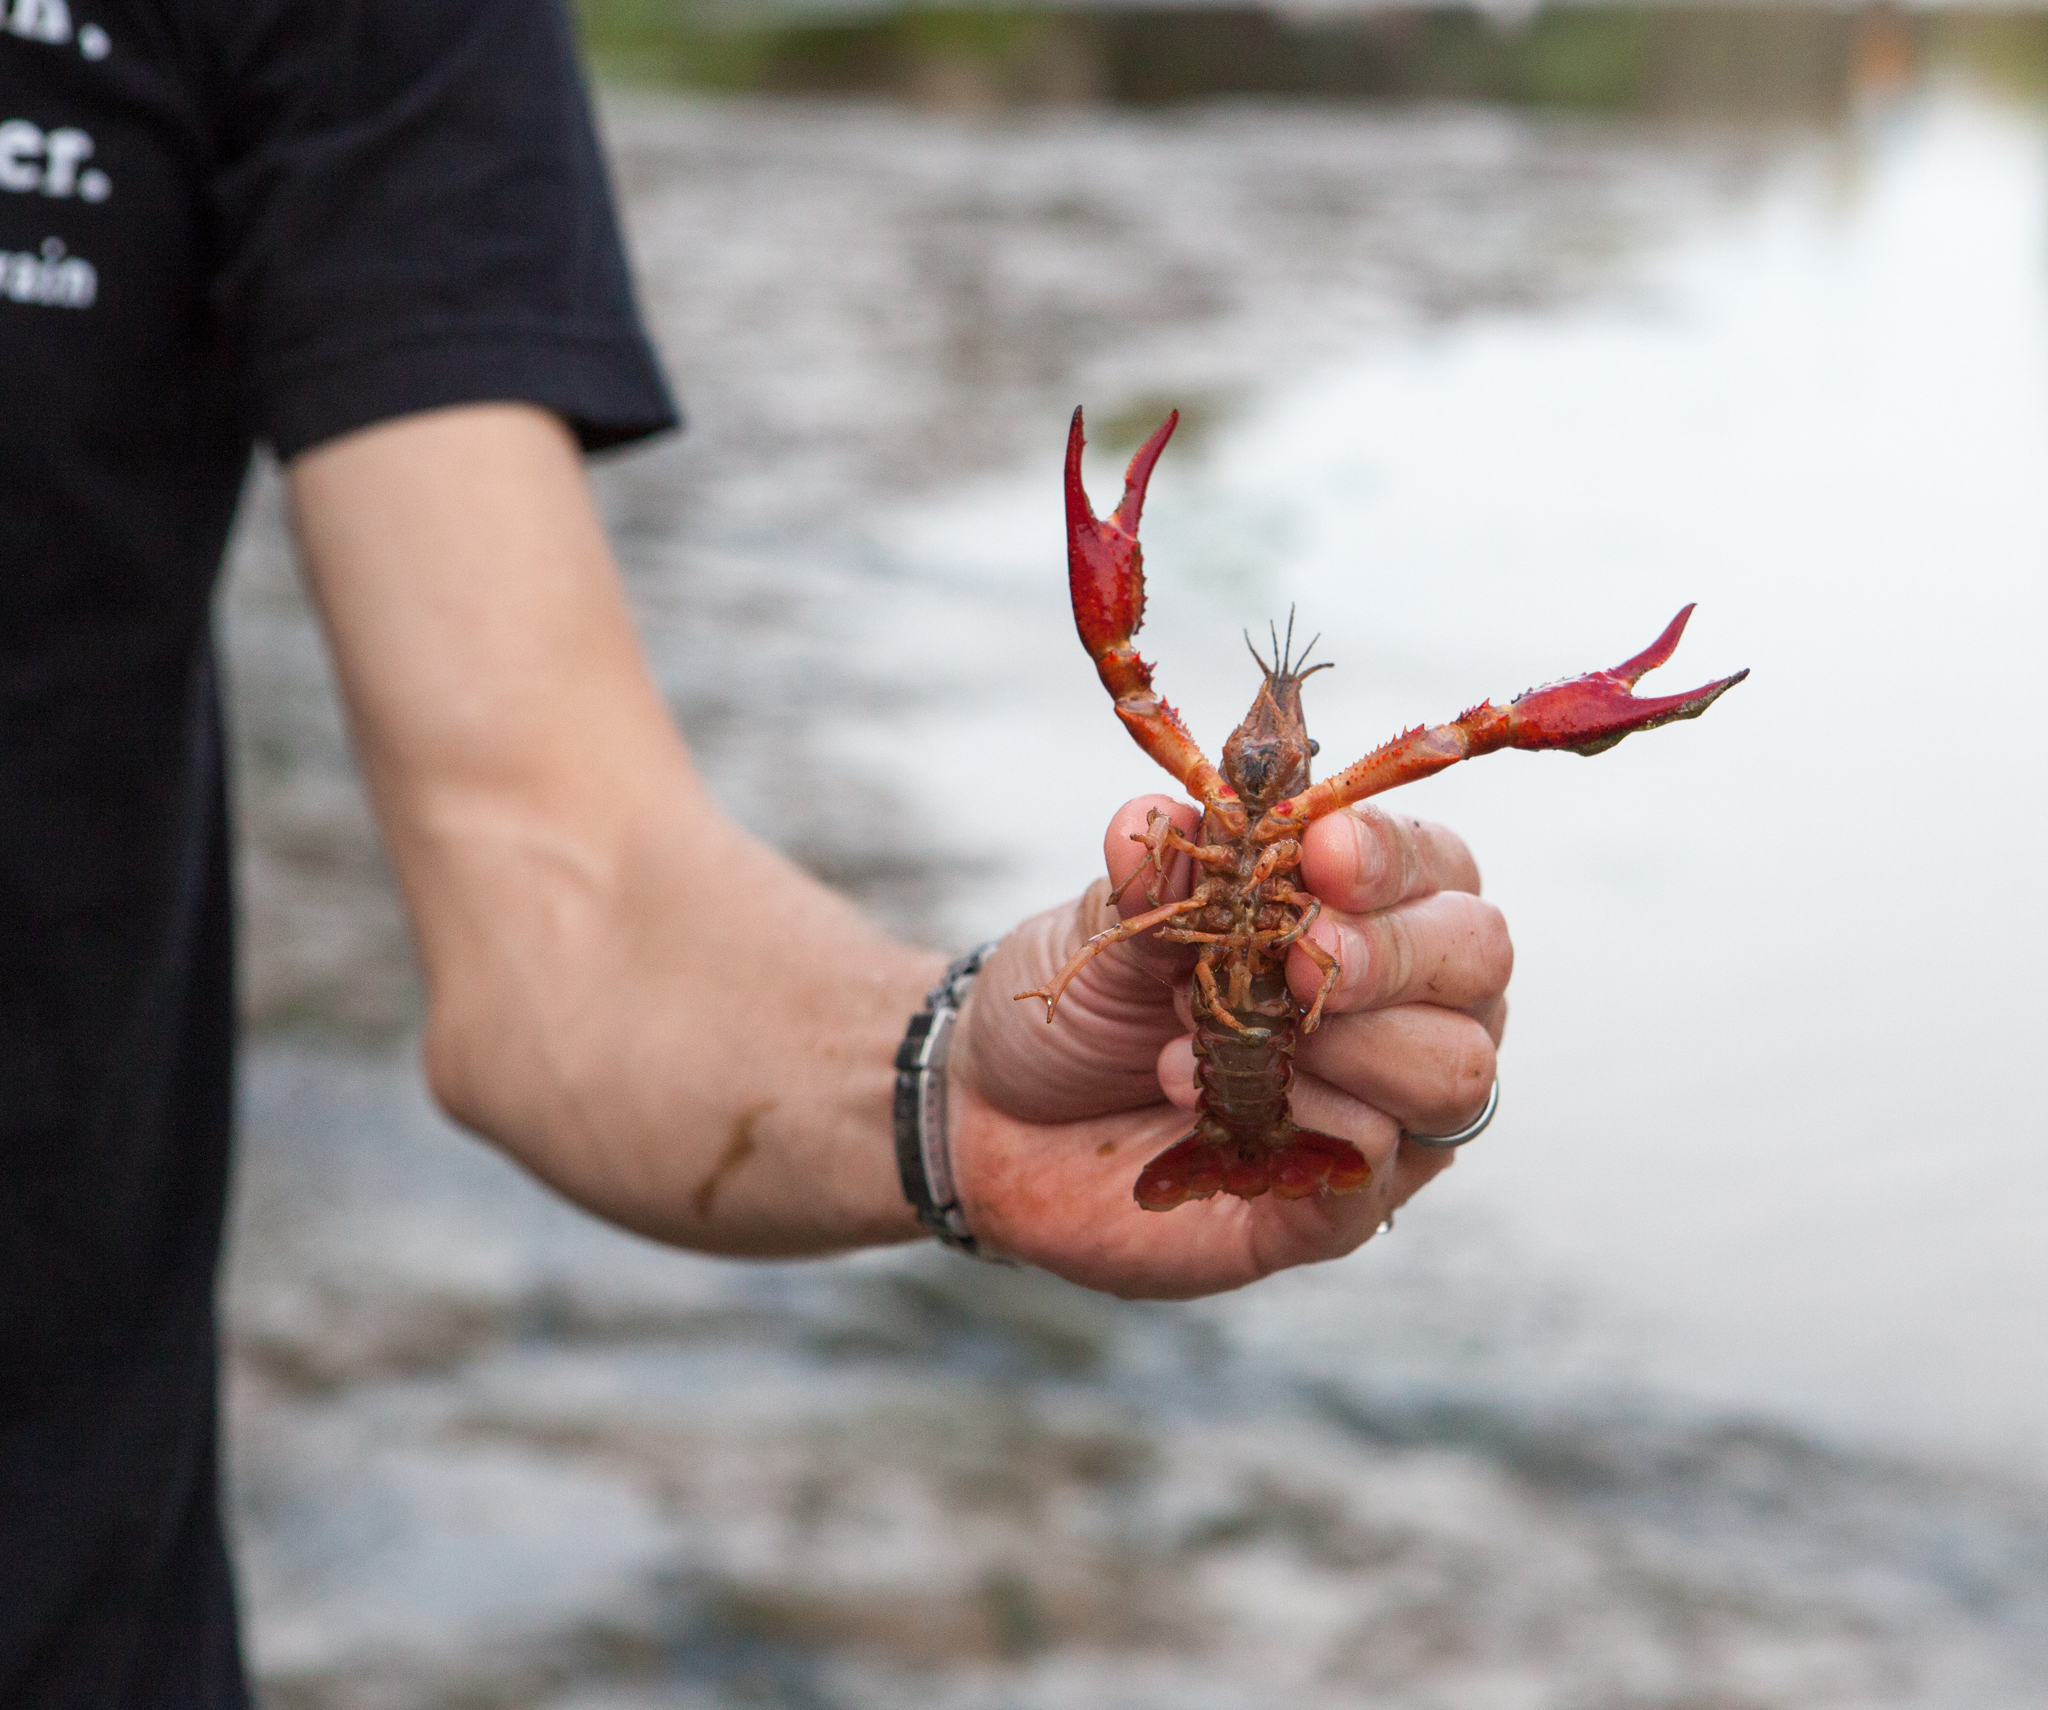 Devitt holds up a red swamp crayfish (Procambarus clarkii), another resident of Barton Springs Pool. The pool is home to numerous species of plants and animals, all forming a functioning ecosystem that the salamanders depend on to survive.